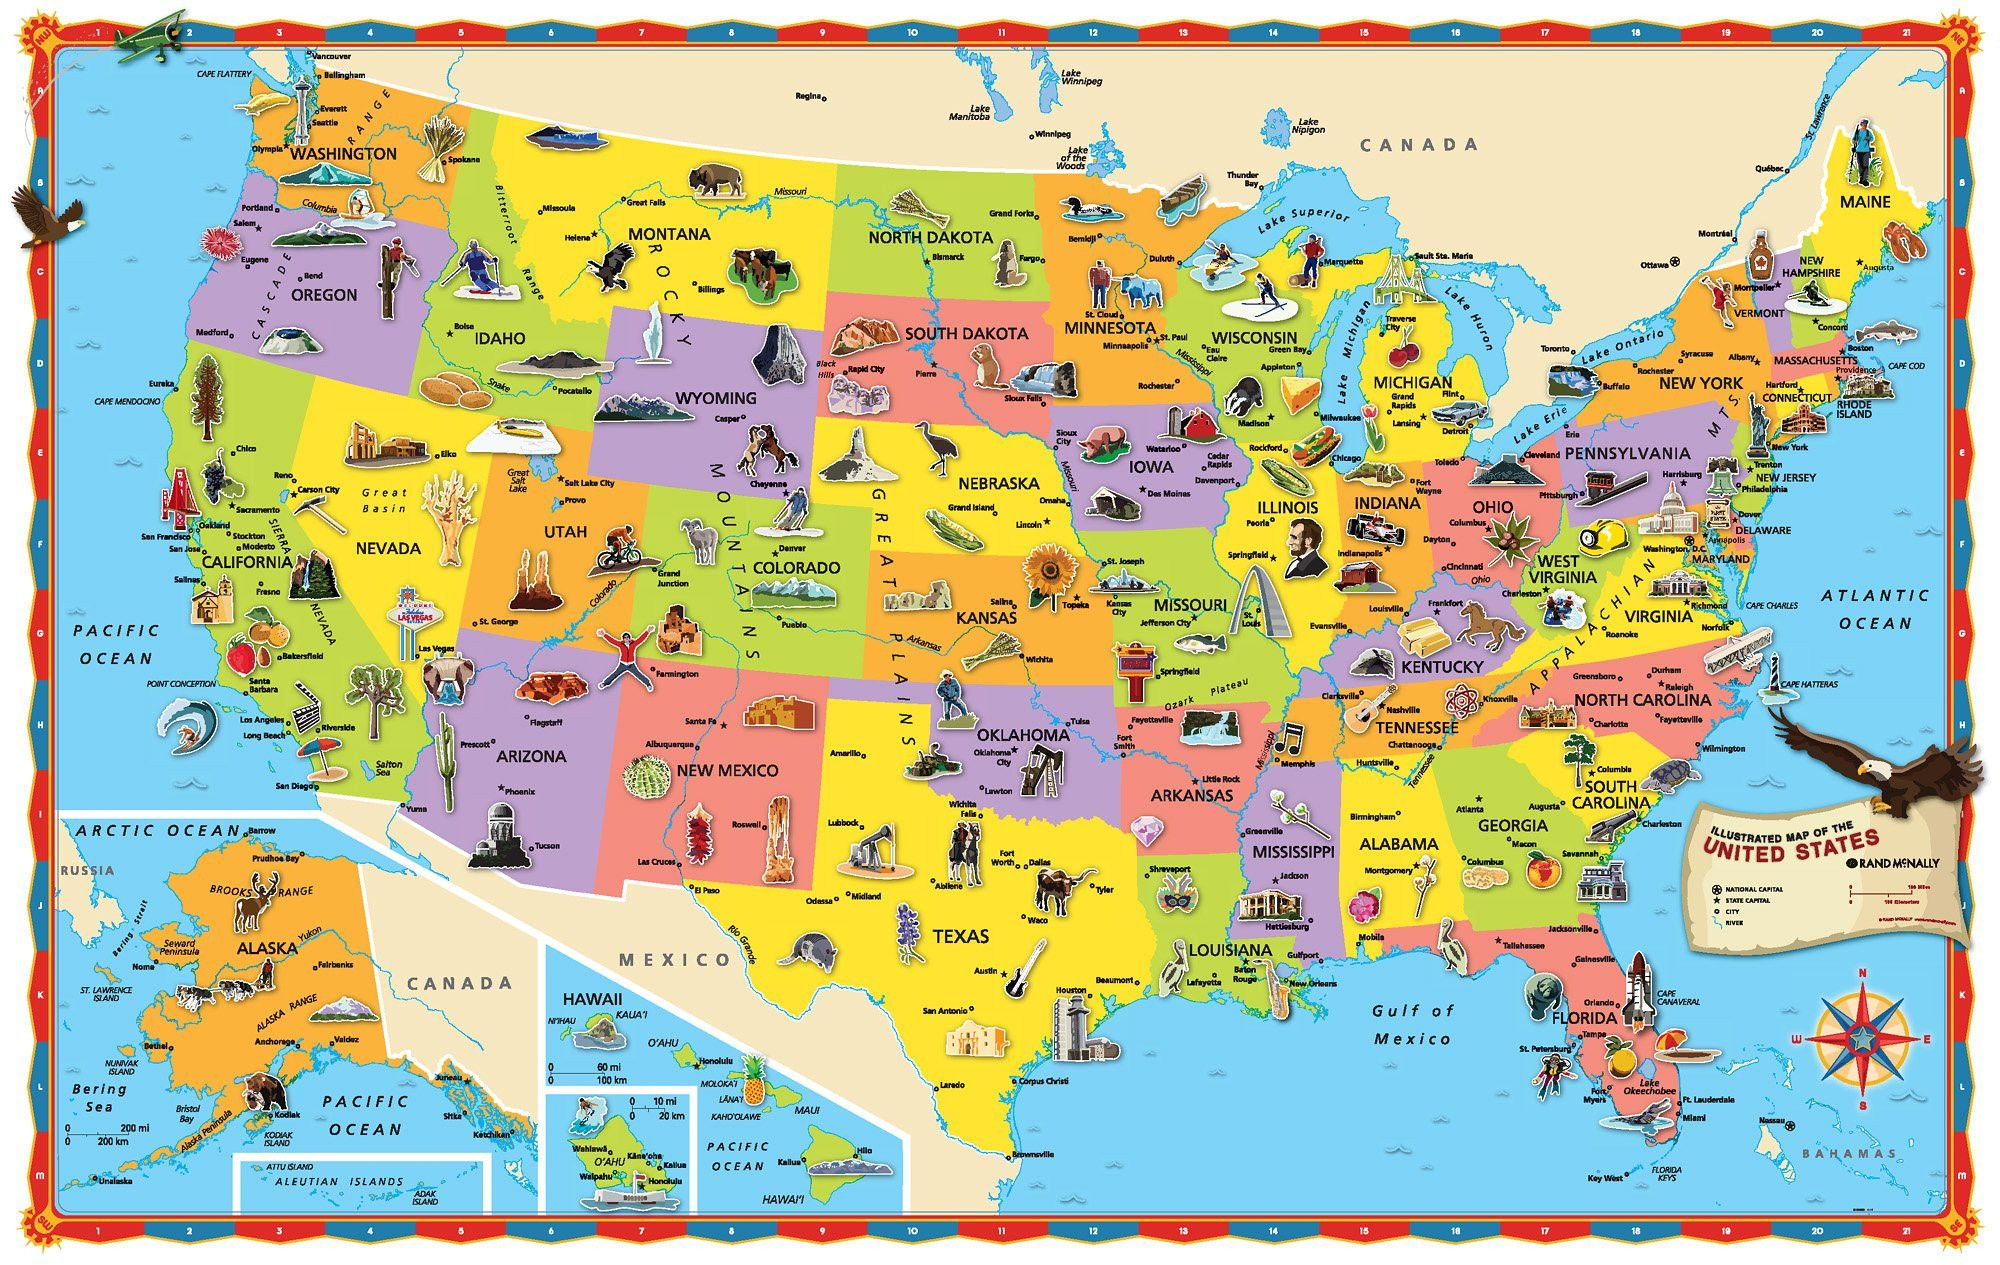 Natural Resources Of The Us Map Natural Resources Map Of Us Usa Map New Us Maps with States for